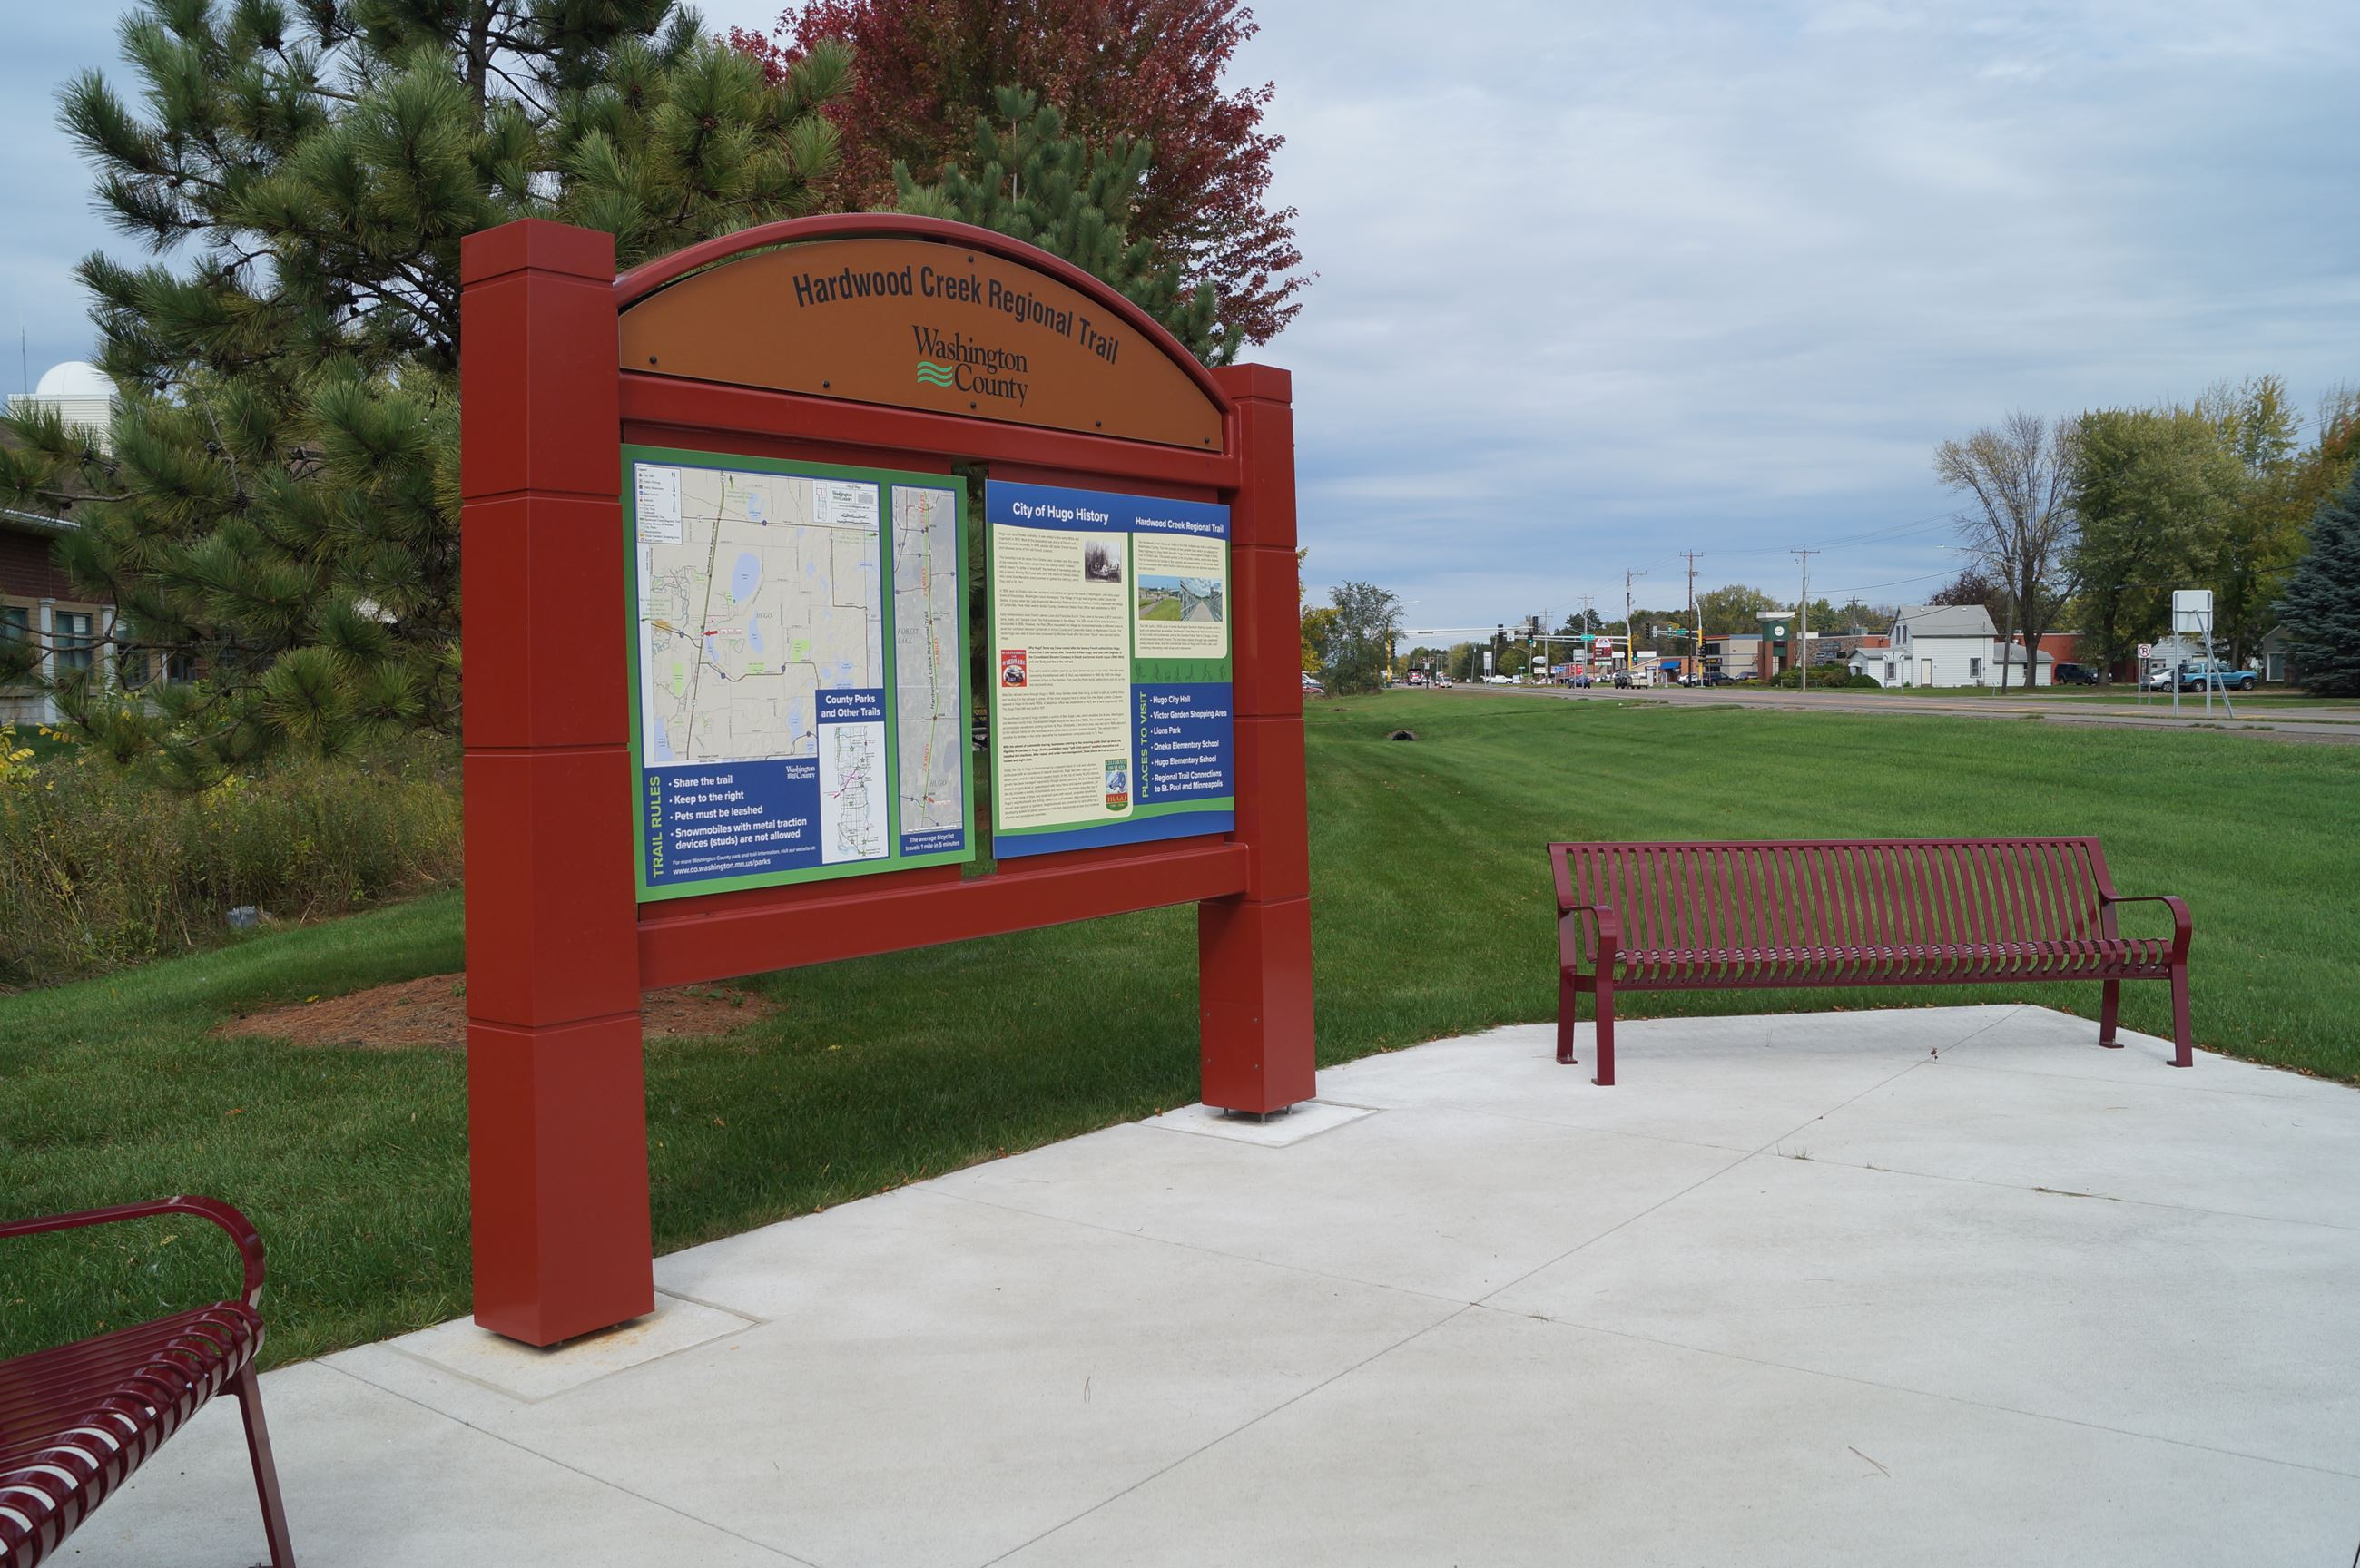 Informational kiosks and benches at rest stop added to Hardwood Creek Regional Trail